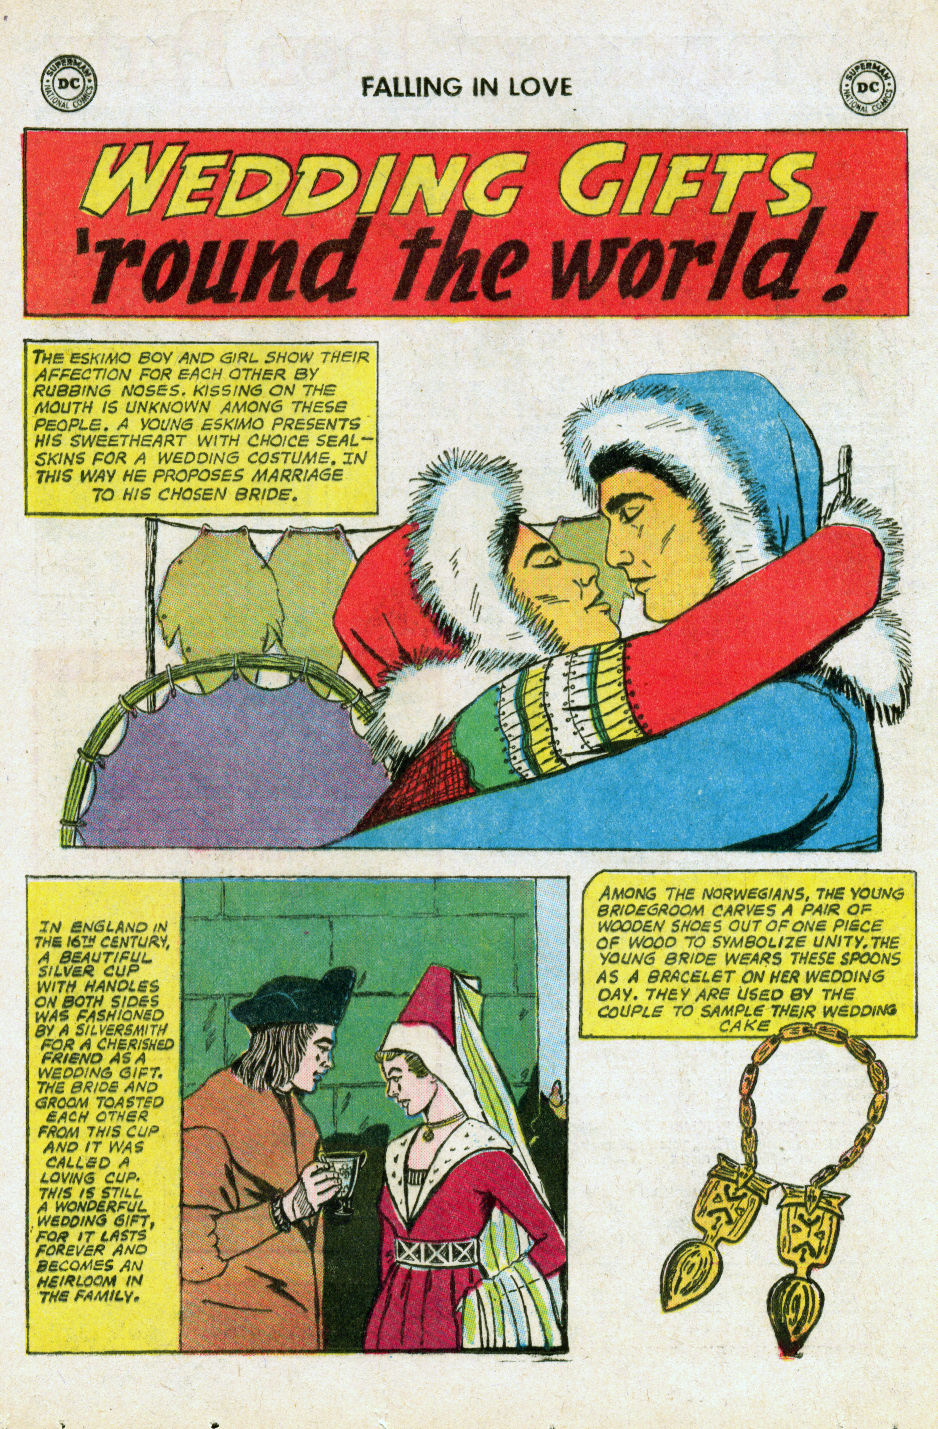 """""""Wedding Gifts 'round the World!""""  Falling in Love  #74 (April 1965)"""